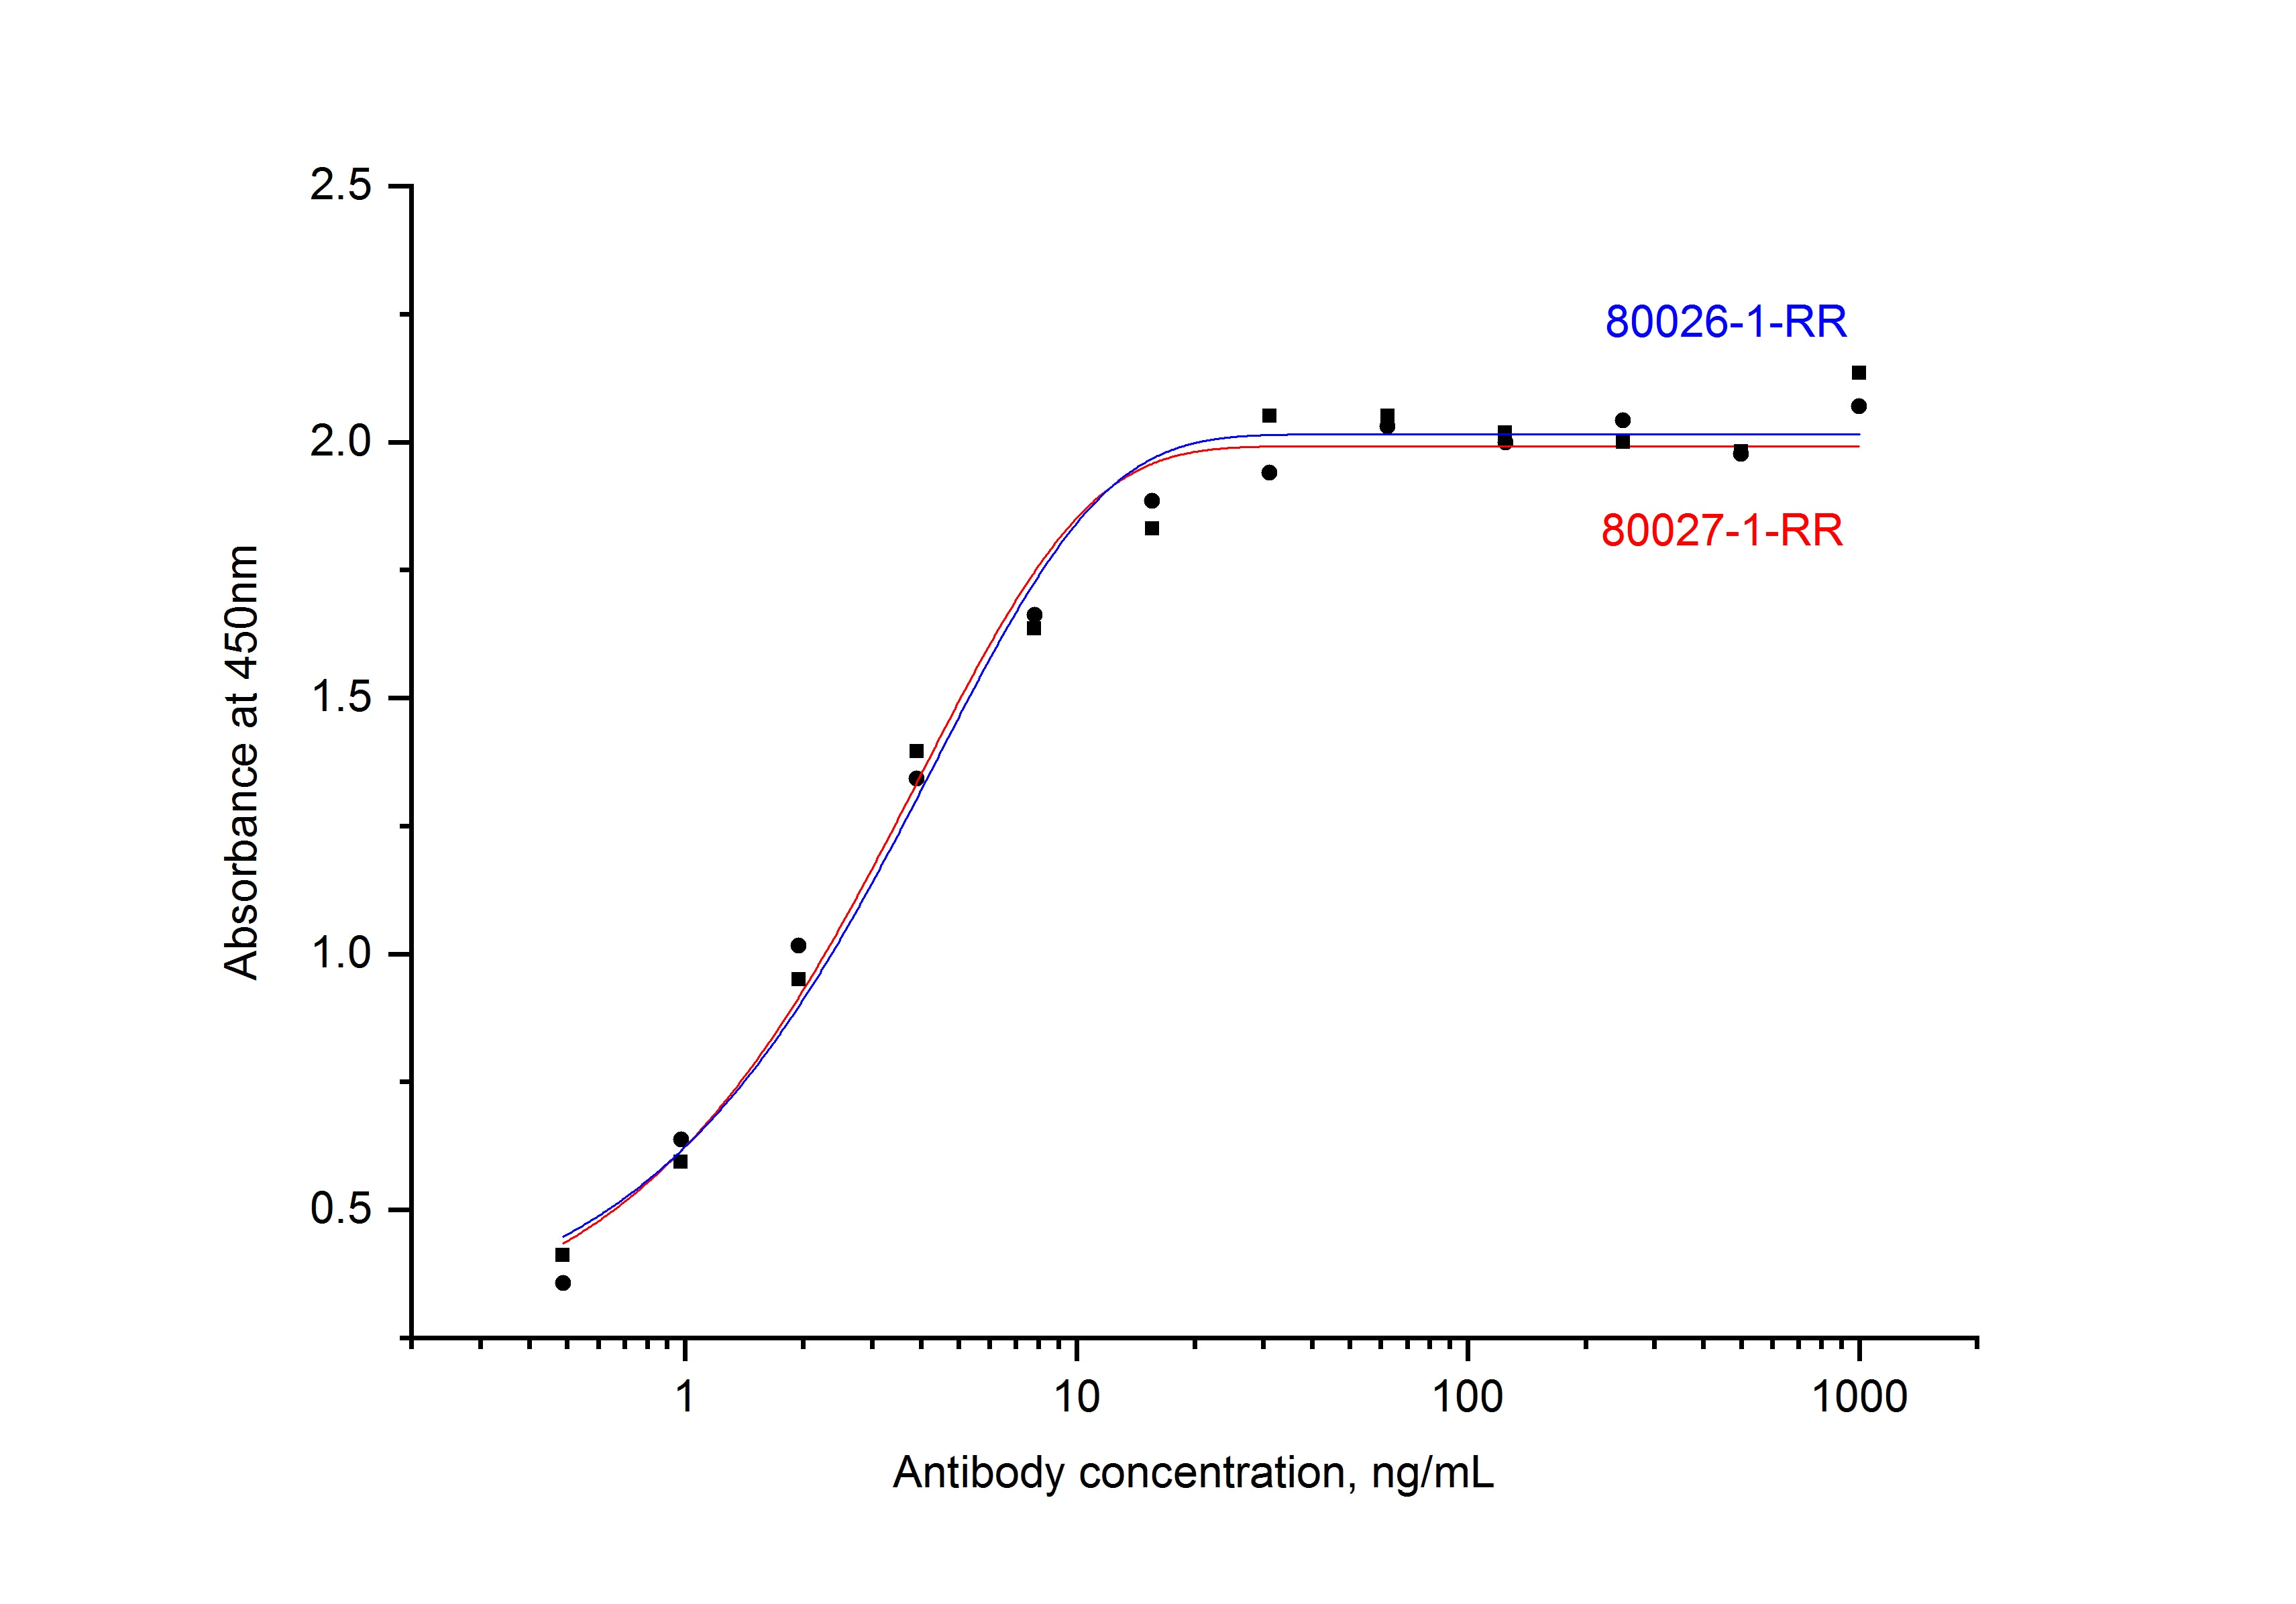 ELISA experiment of Recombinant protein using 80026-1-RR